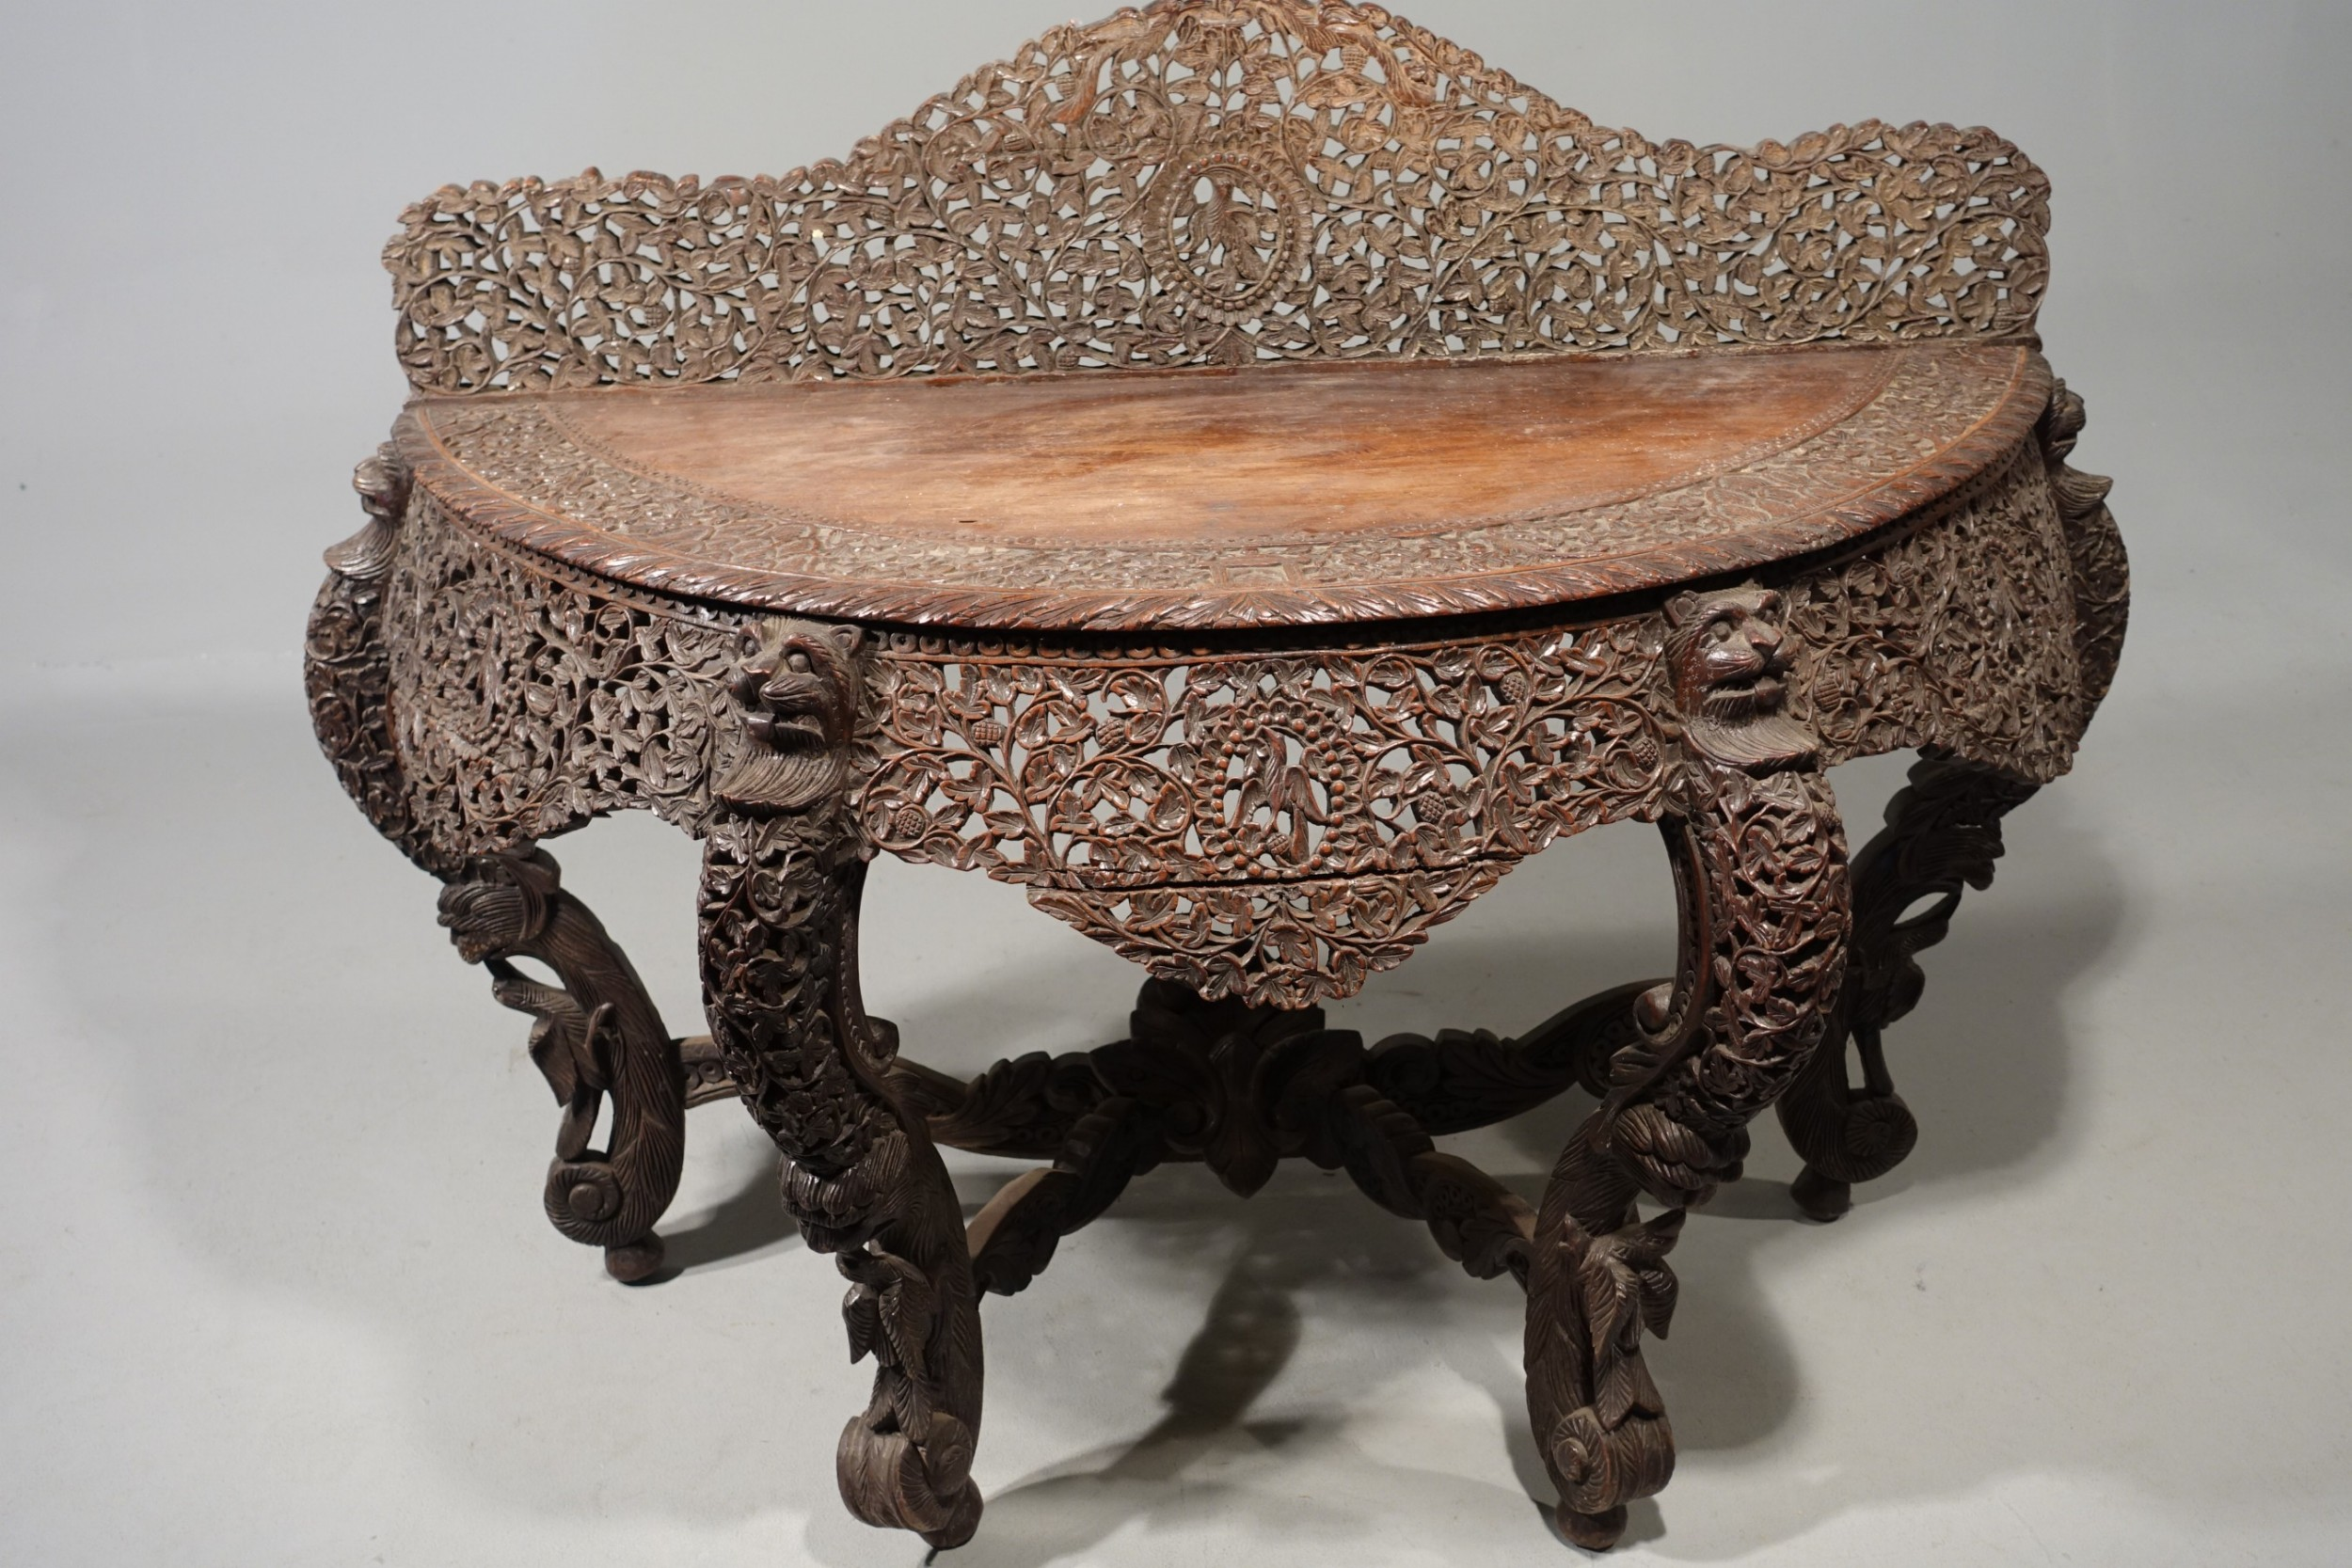 an outstanding and elaborate late 19th century oriental demilune table